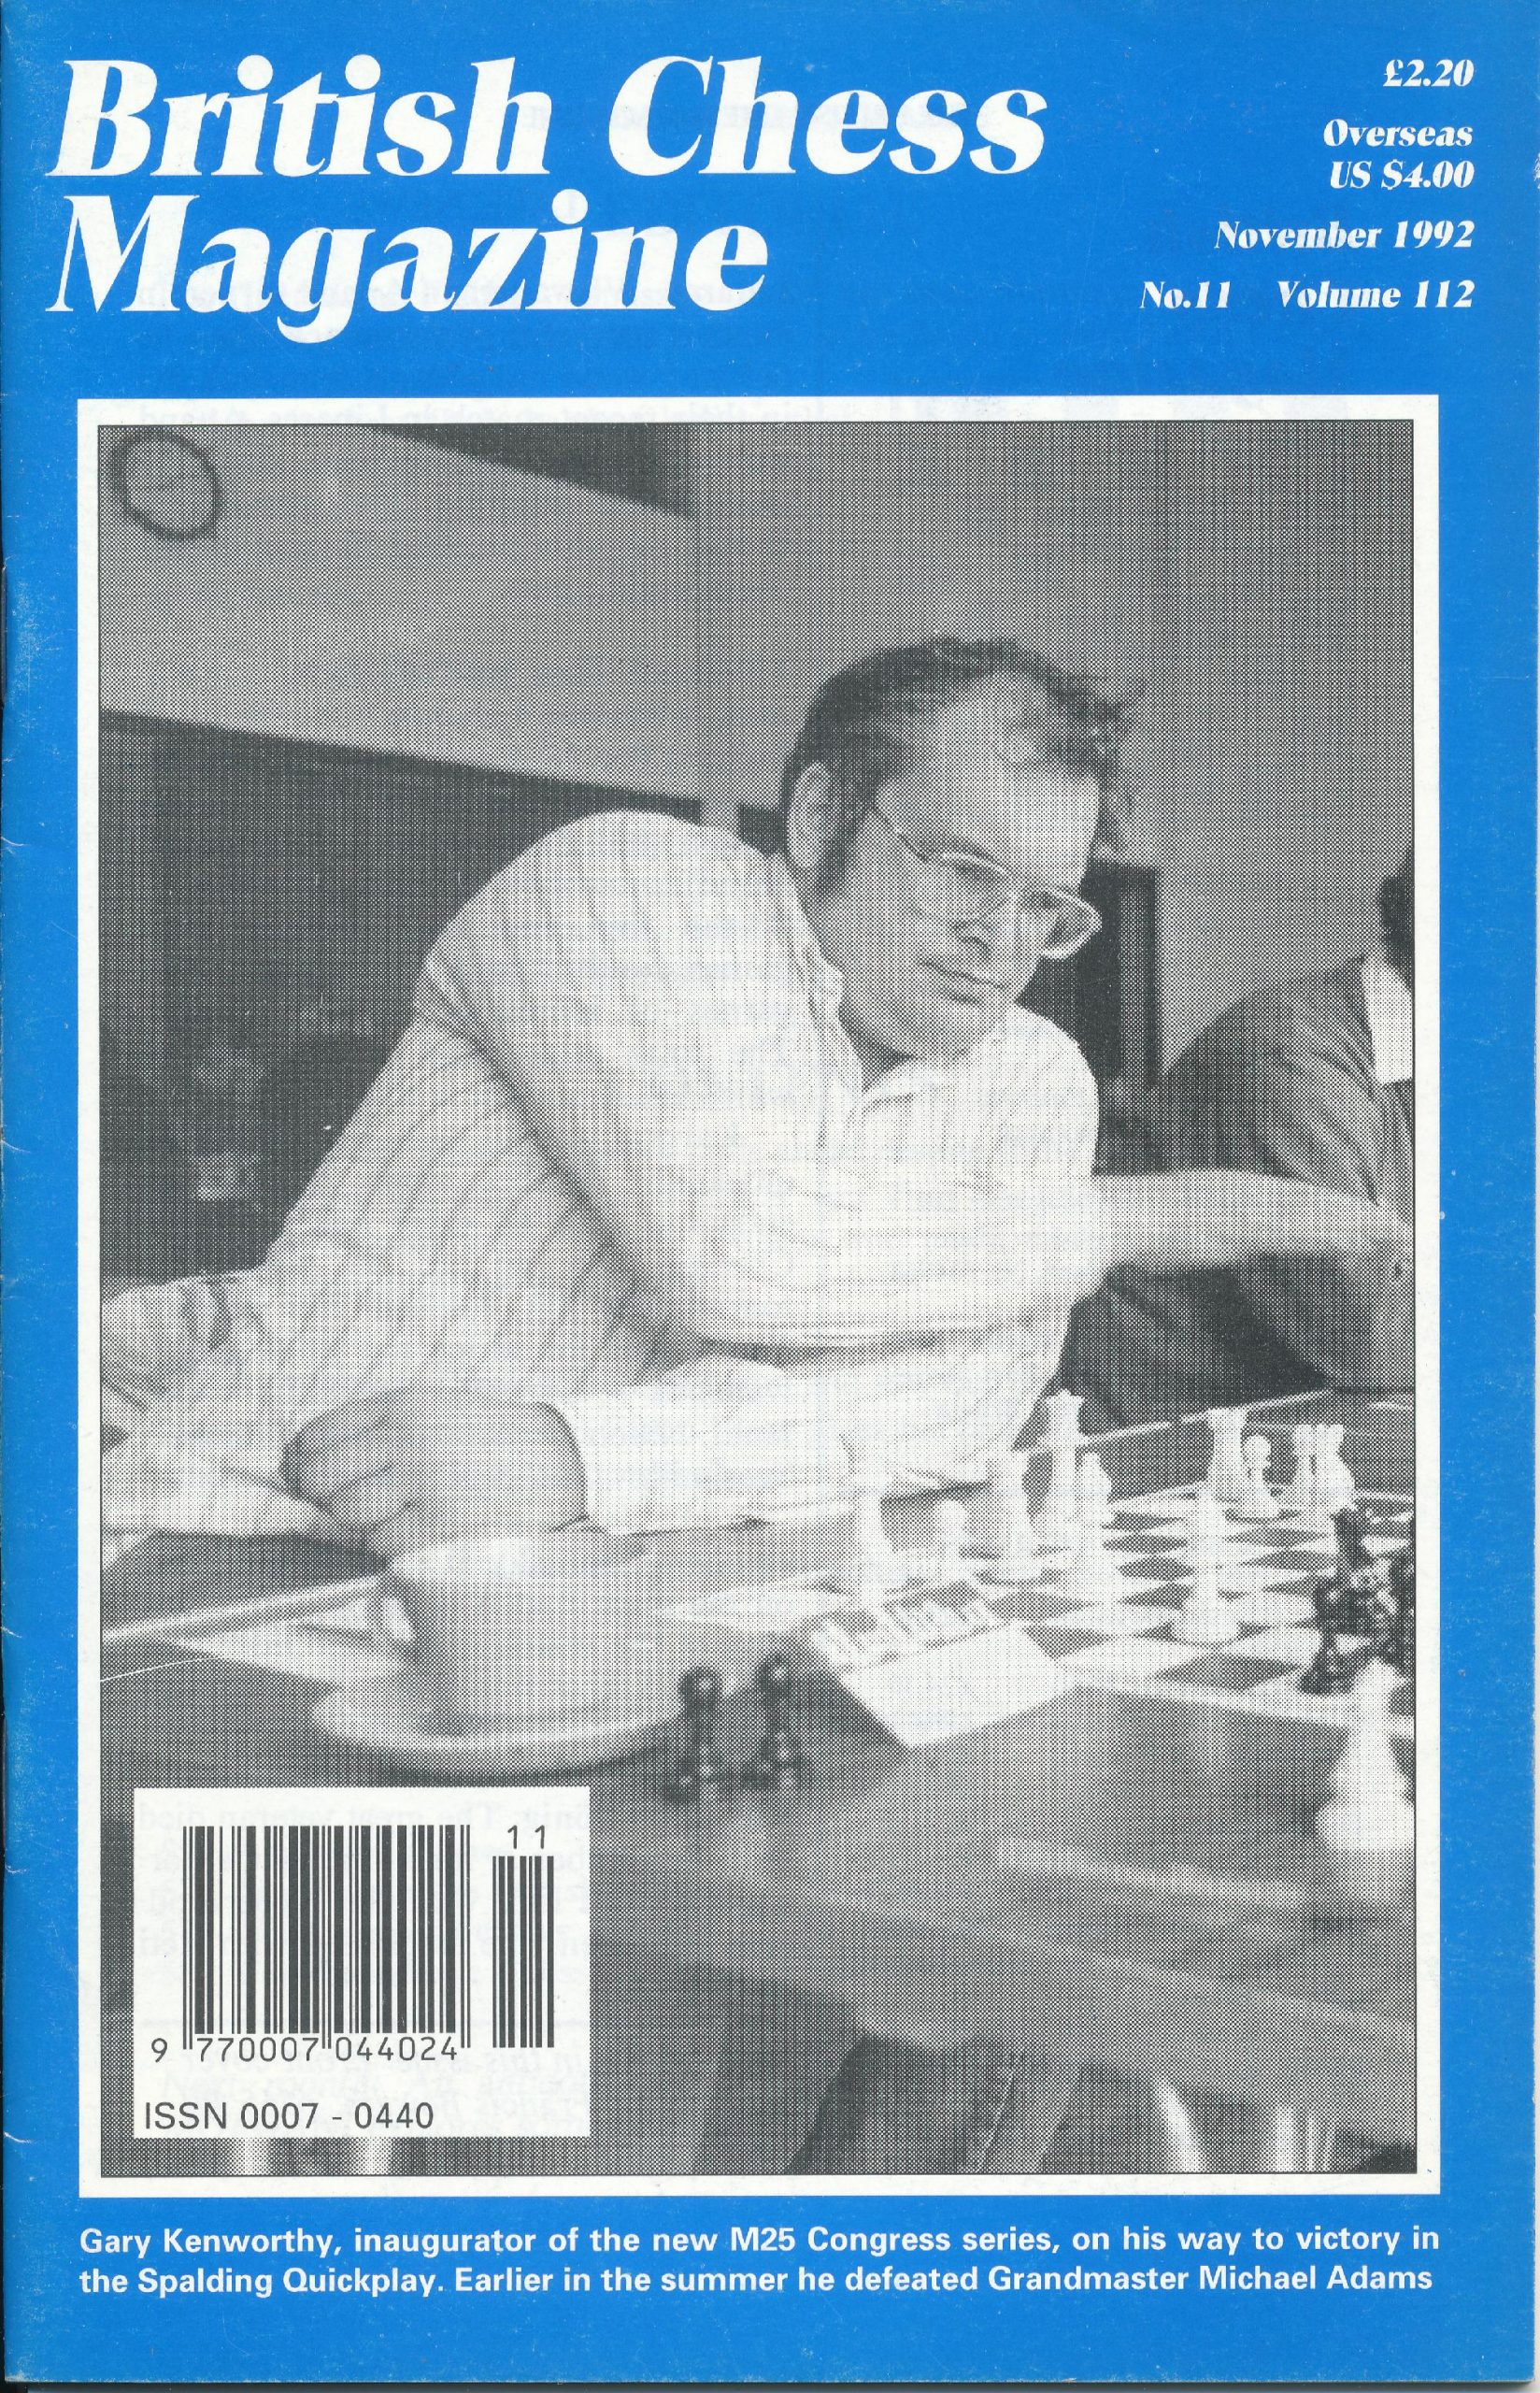 Gary Kenworthy, inaugurator of the new M25 Congress series, on his way to victory in the Spalding Quickplay. Earlier in the summer he defeated Grandmaster Michael Adams, photograph by Francis Bowers